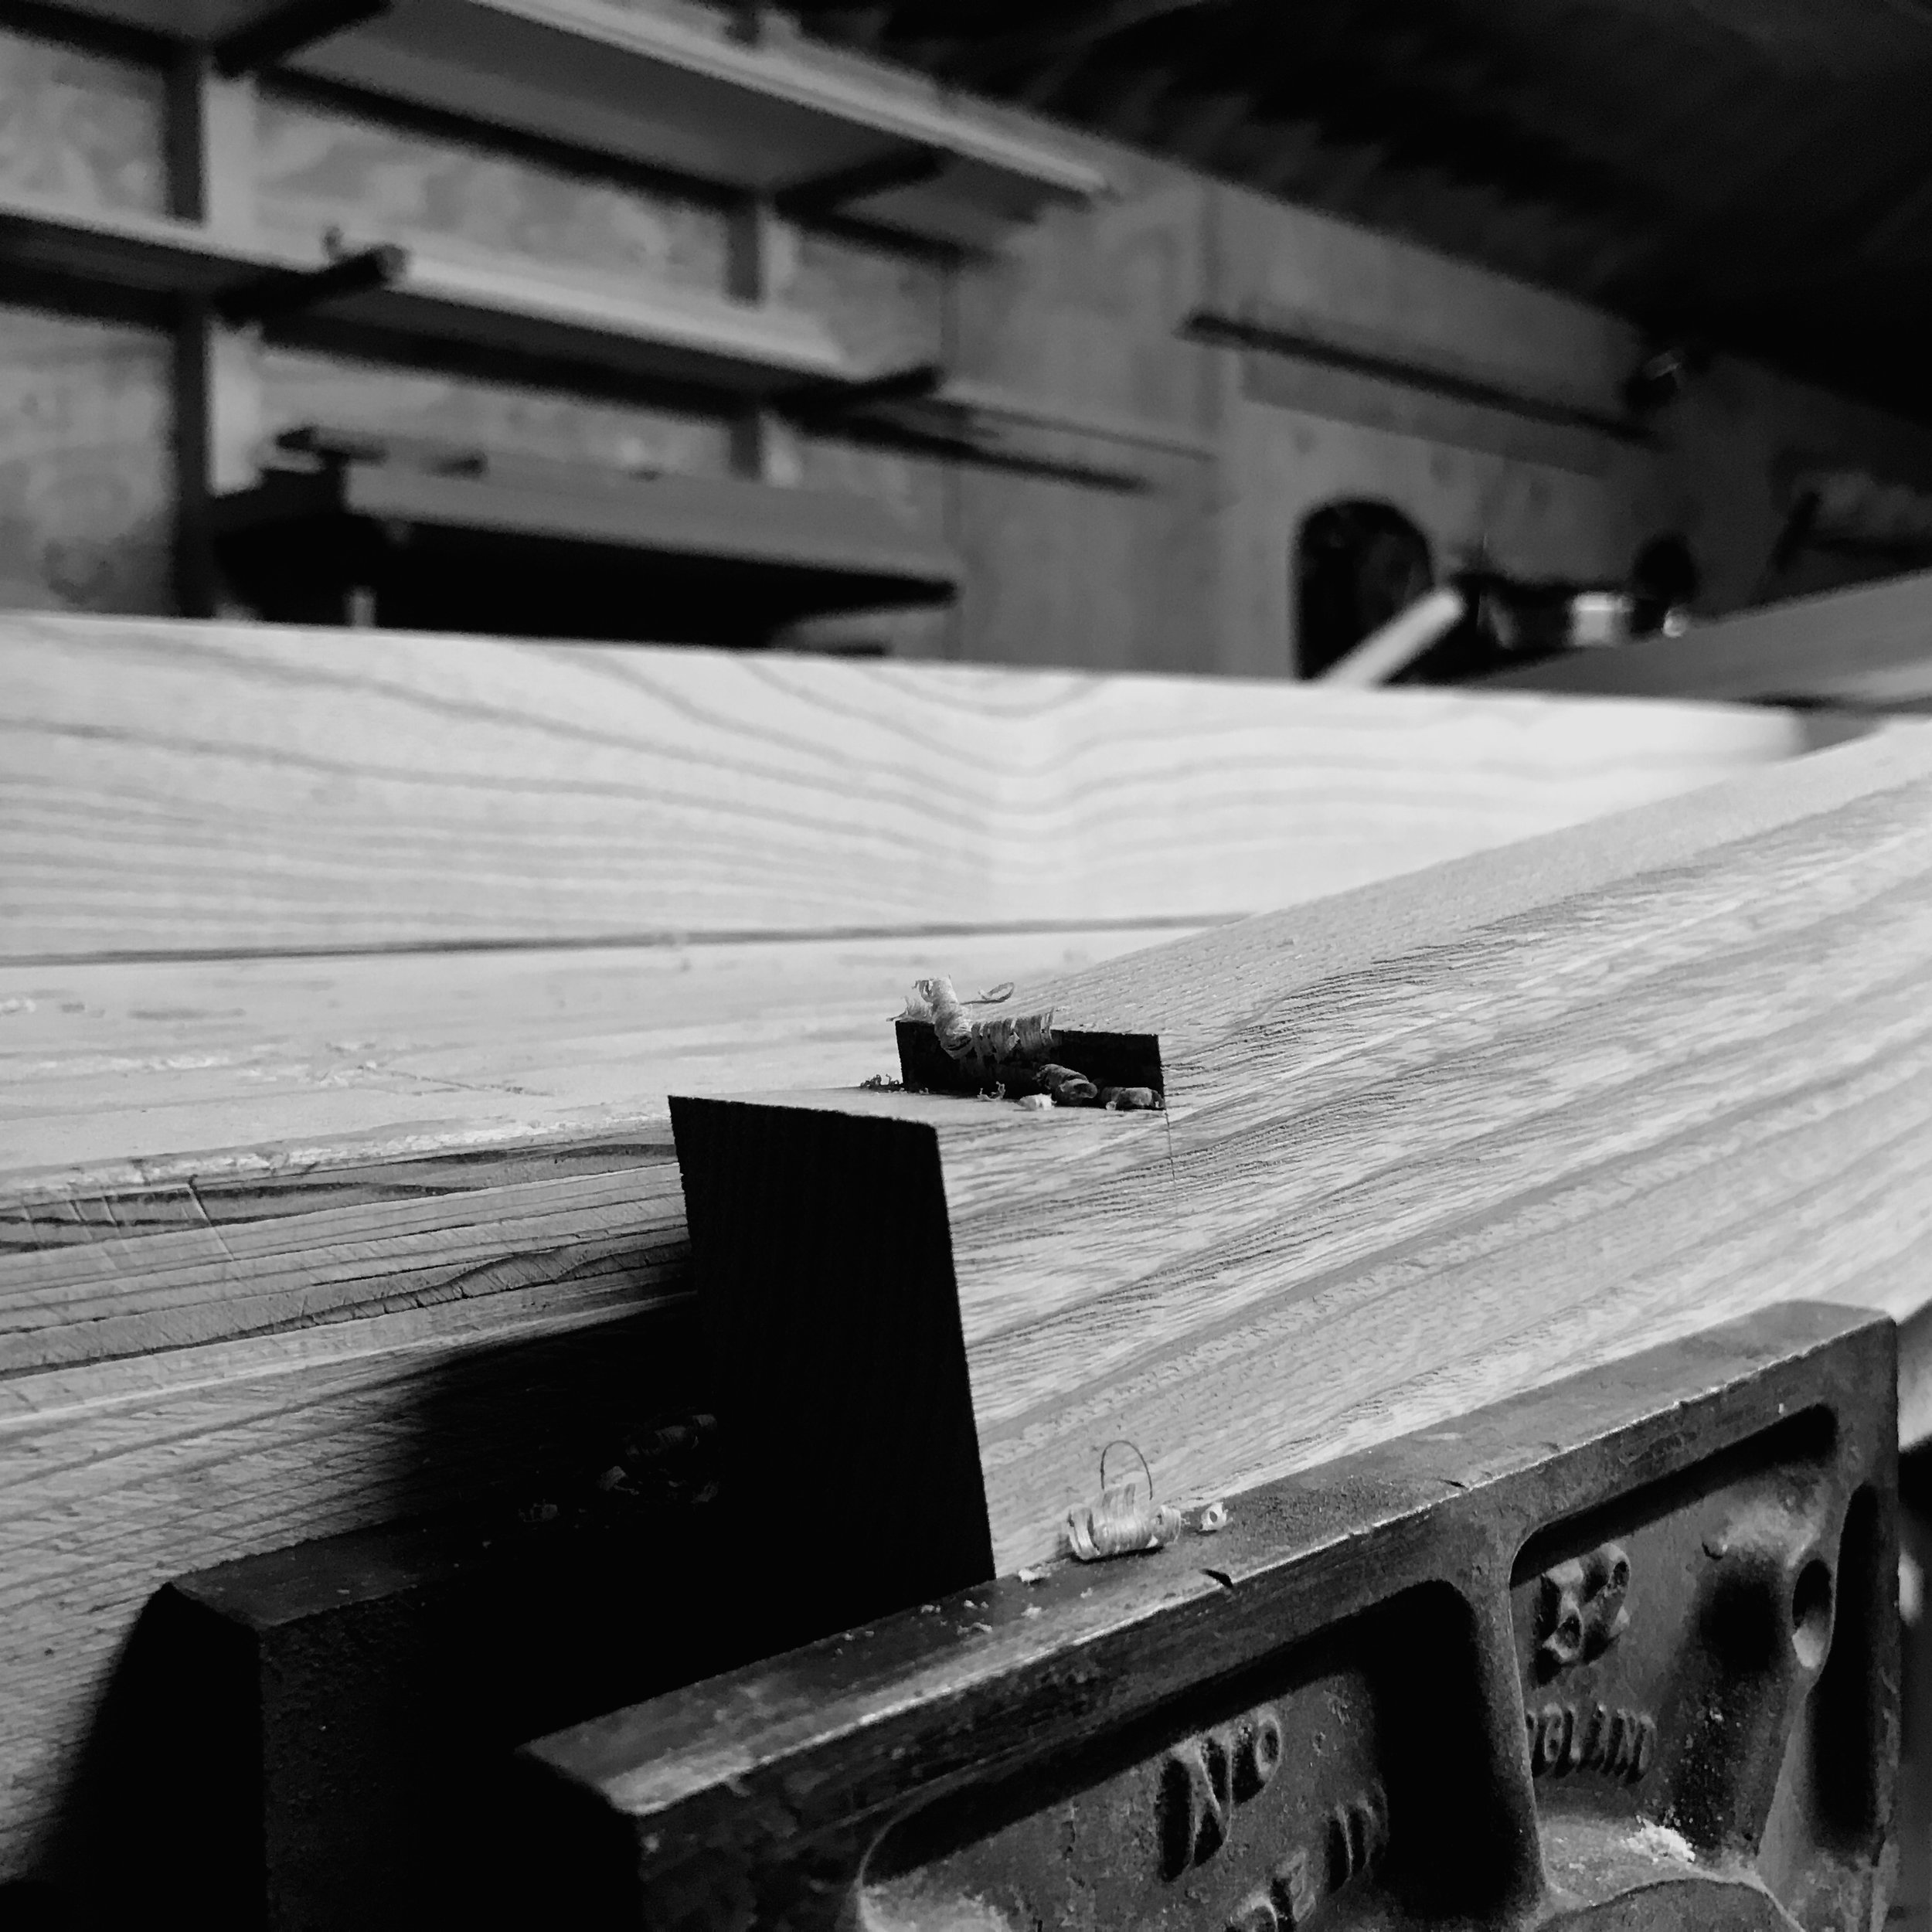 Large dovetail joint for a bespoke dining table